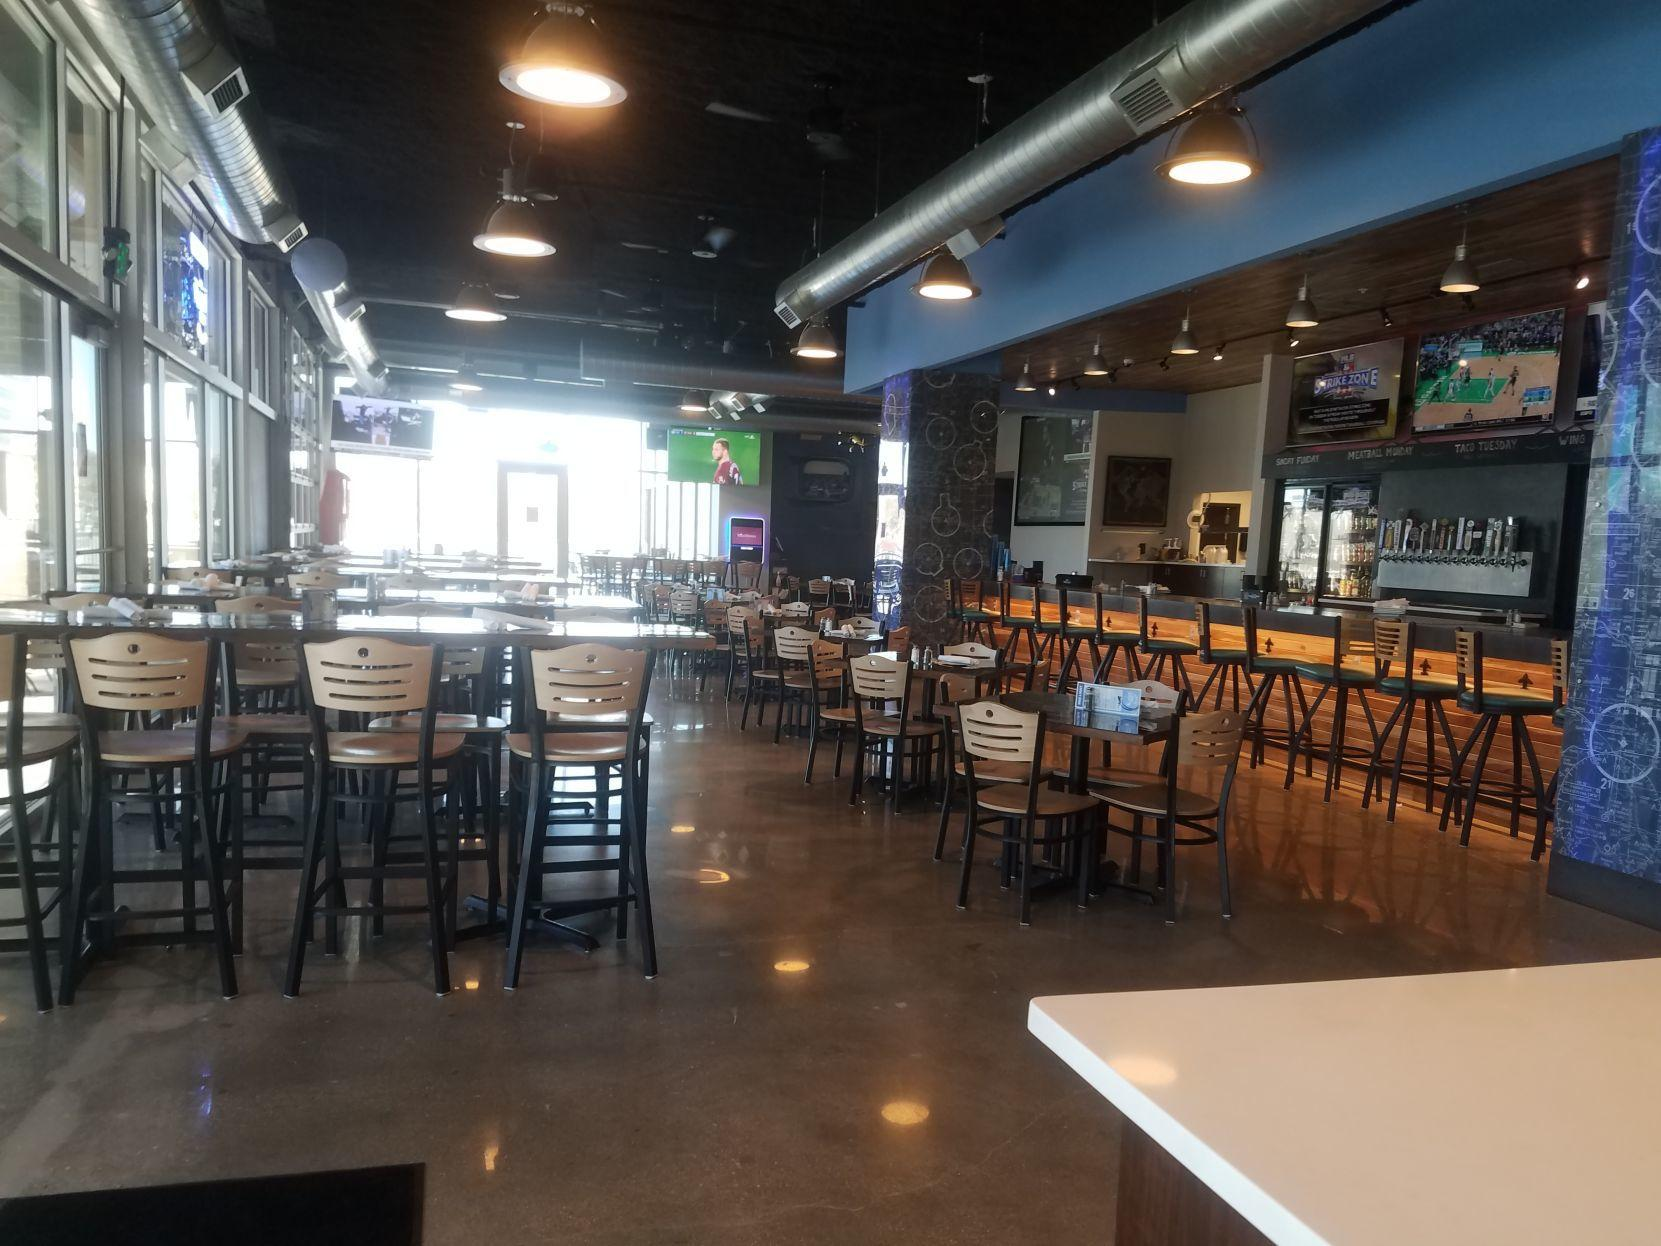 Nightlife Review Flight Deck Tap Grill New In The Old Creighton Hospital Space Sticks The Landing Nightlife Omaha Com